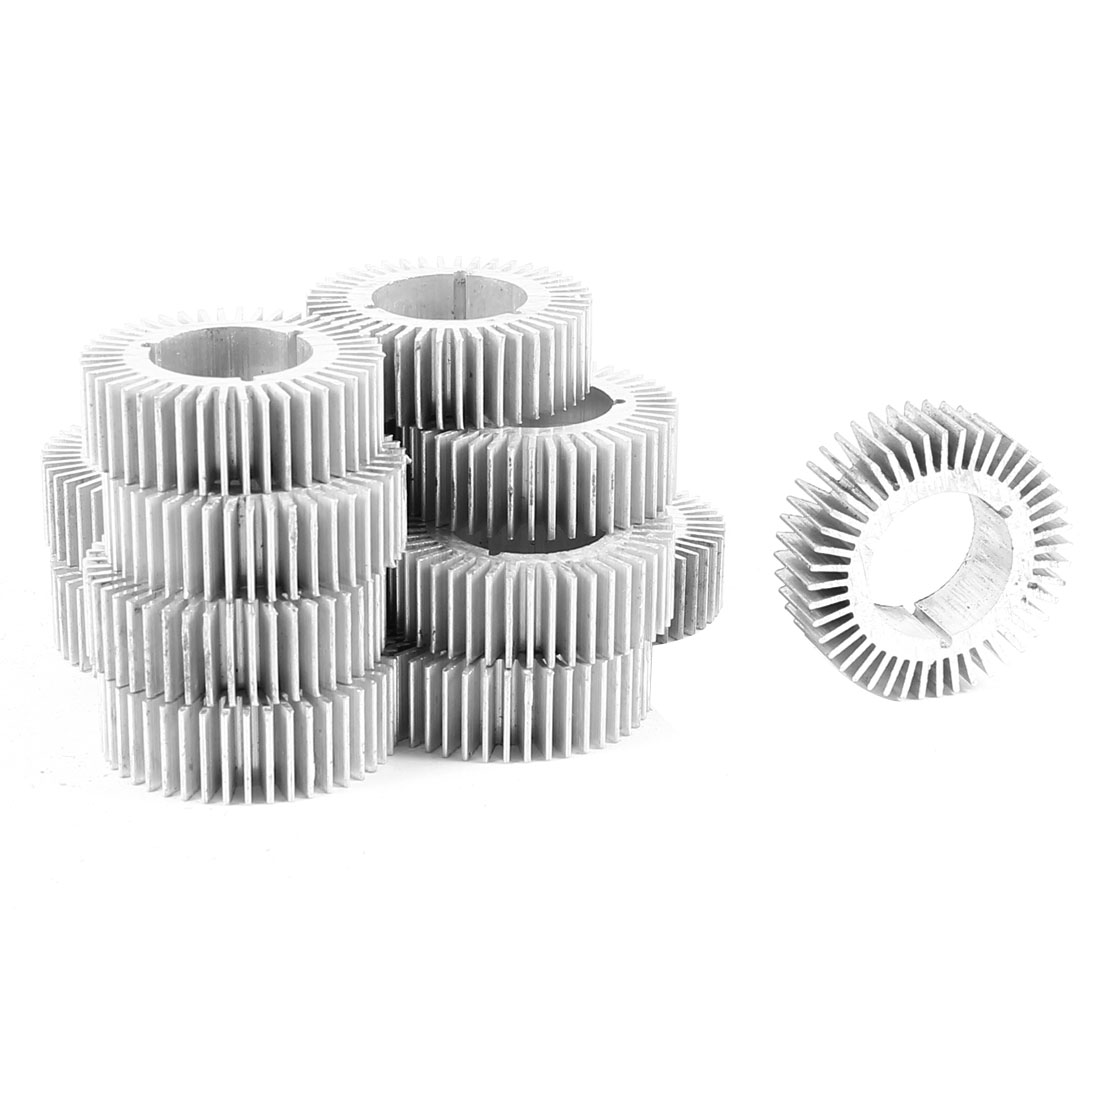 15 Pcs Round Shaped 32mm OD 17.5mm ID 10mm Height LED Light Heatsink Cooling Fin